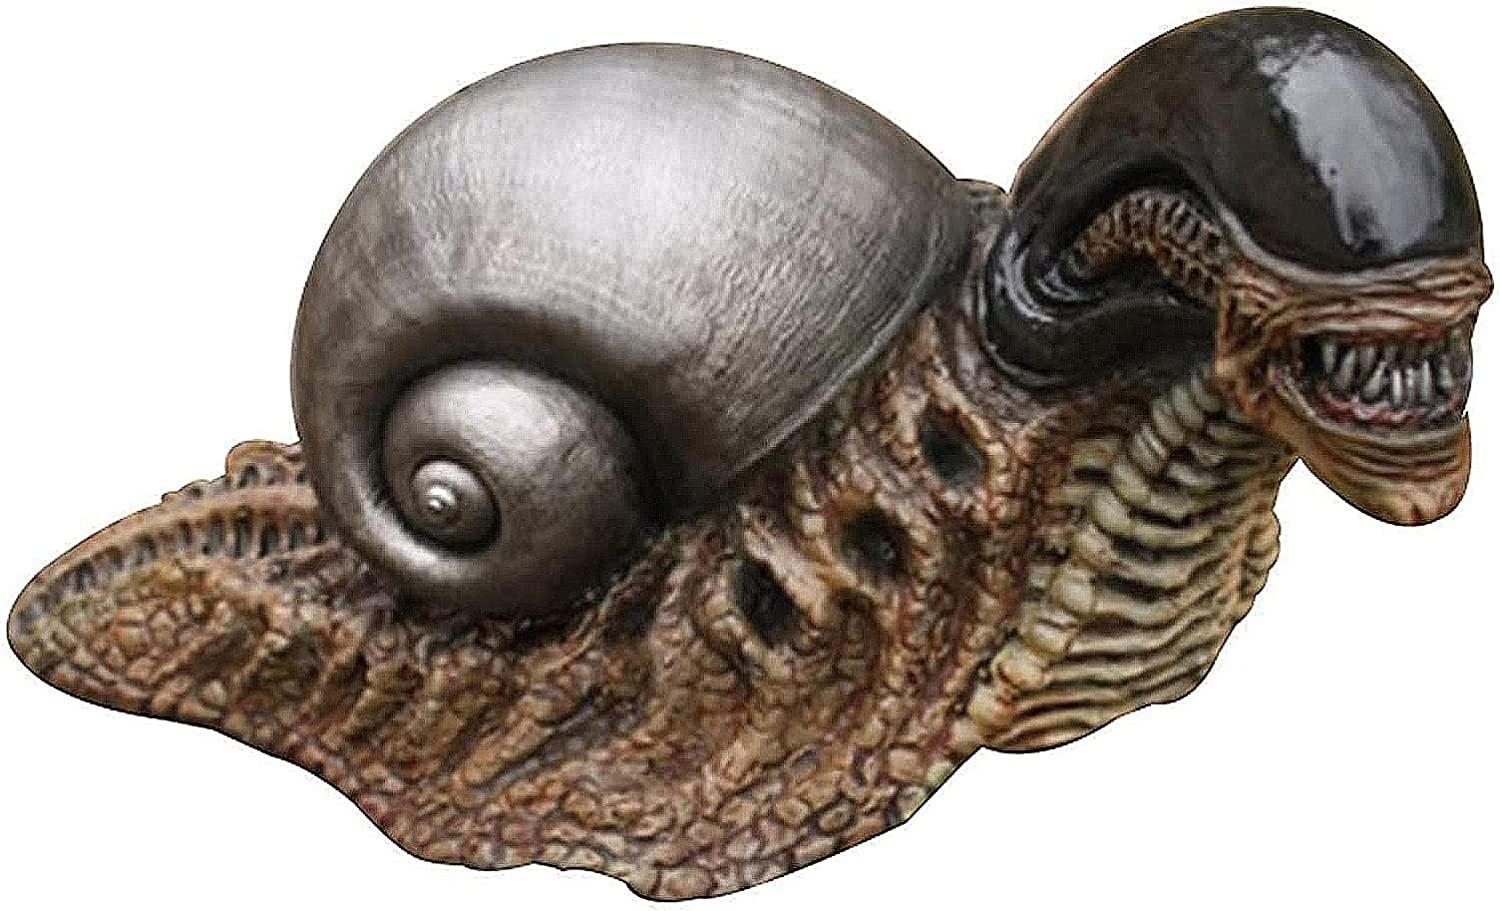 ECAAUYTO 2021 New Alien Snail Statue, Animal Statue Snail Figurine for Lawn Ornaments Indoor or Outdoor Decorations Garden Gnome Statue, Ornament Gift